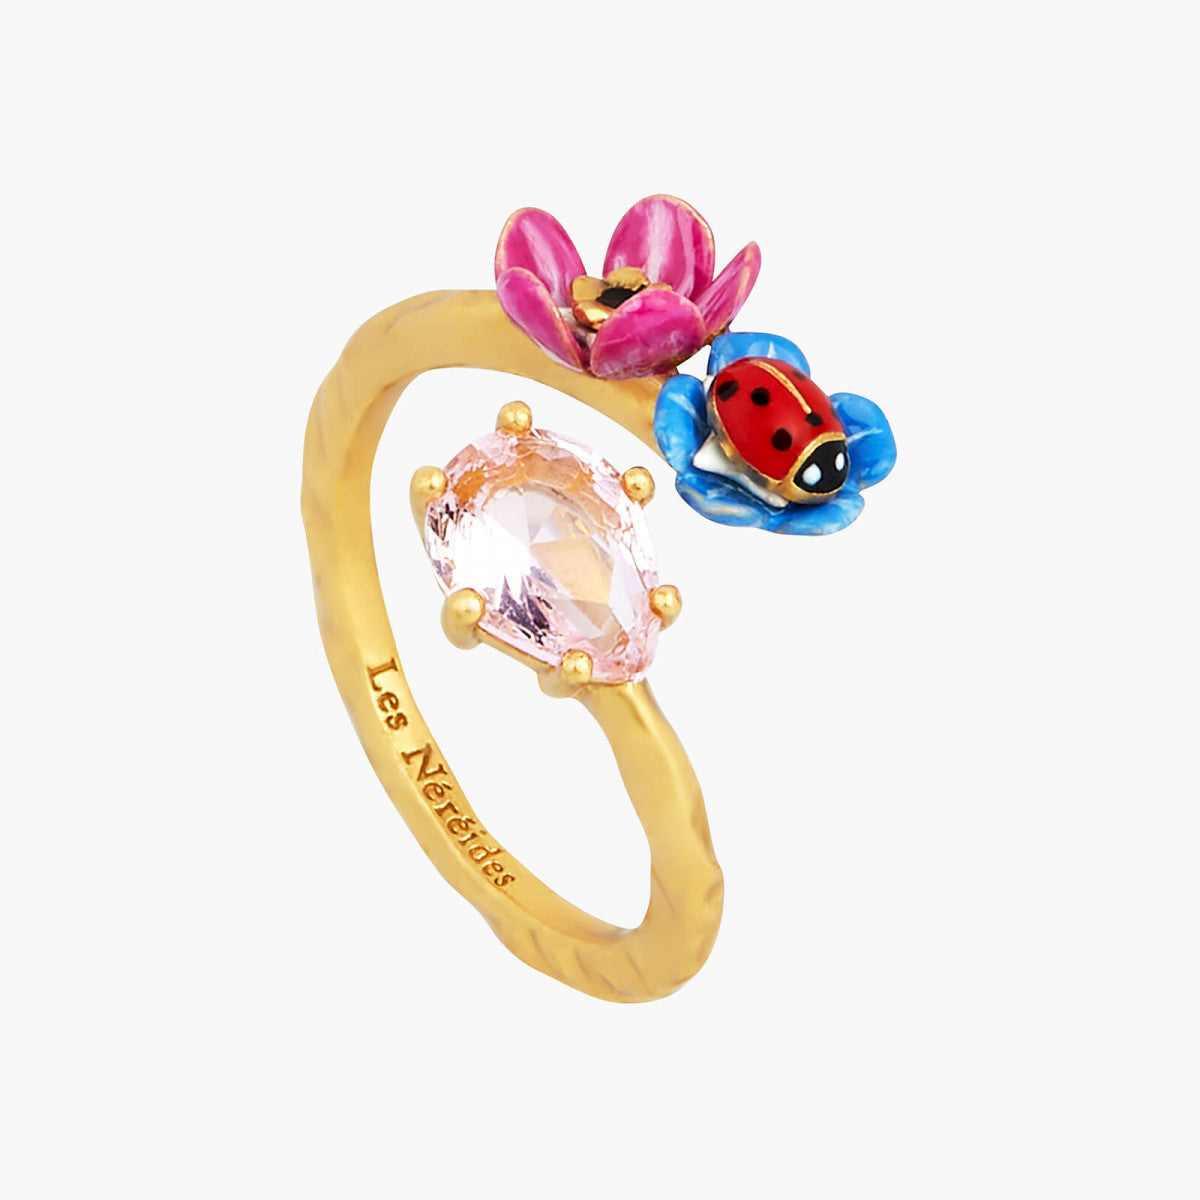 Faceted glass, flower and ladybird you and me ring